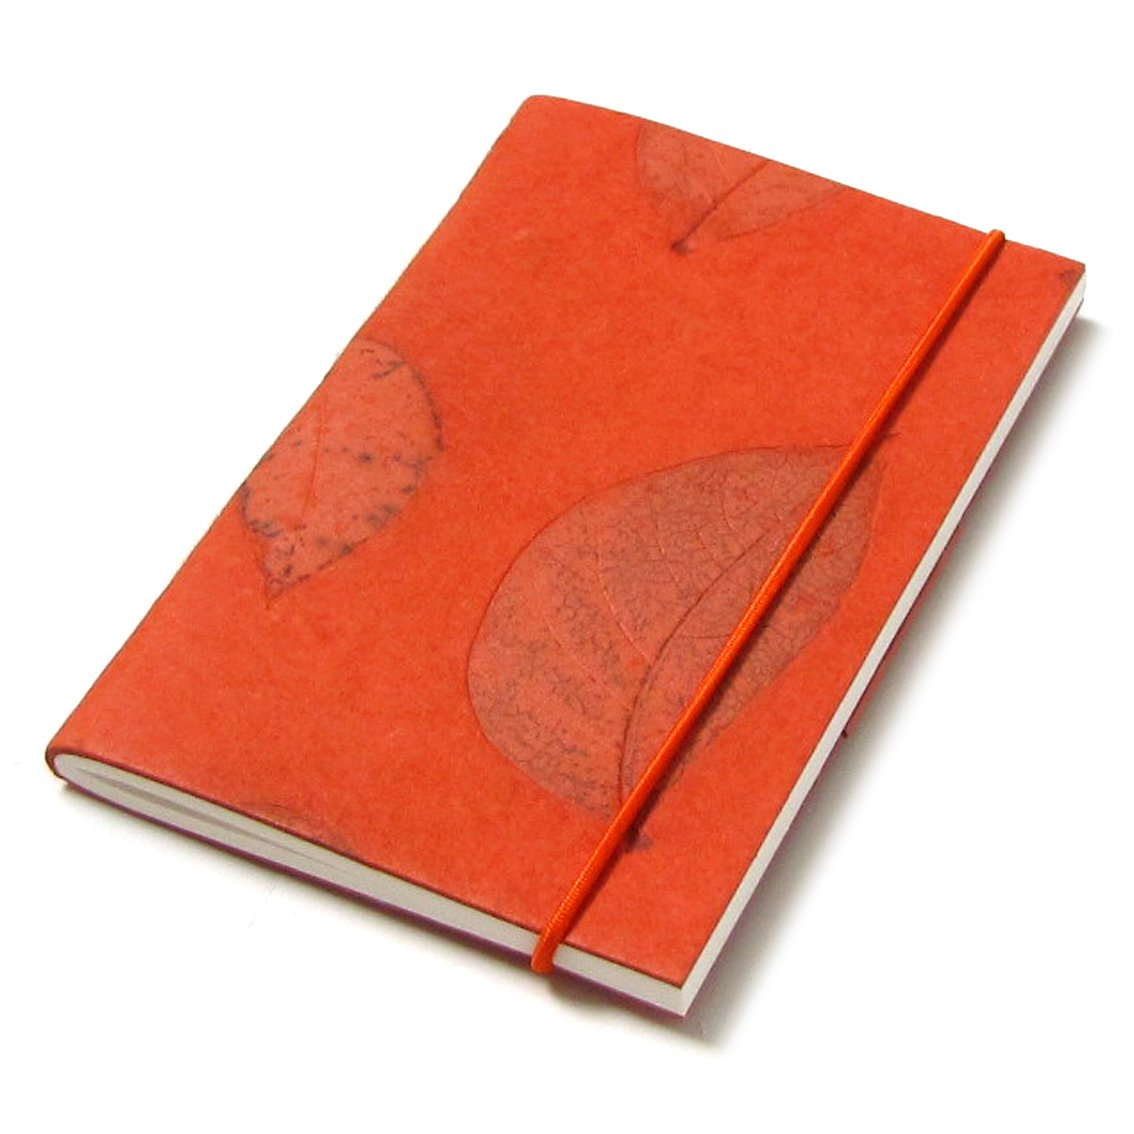 Writing journal small diary orange 3x5 40pp recycled ethical handmade paper stationery